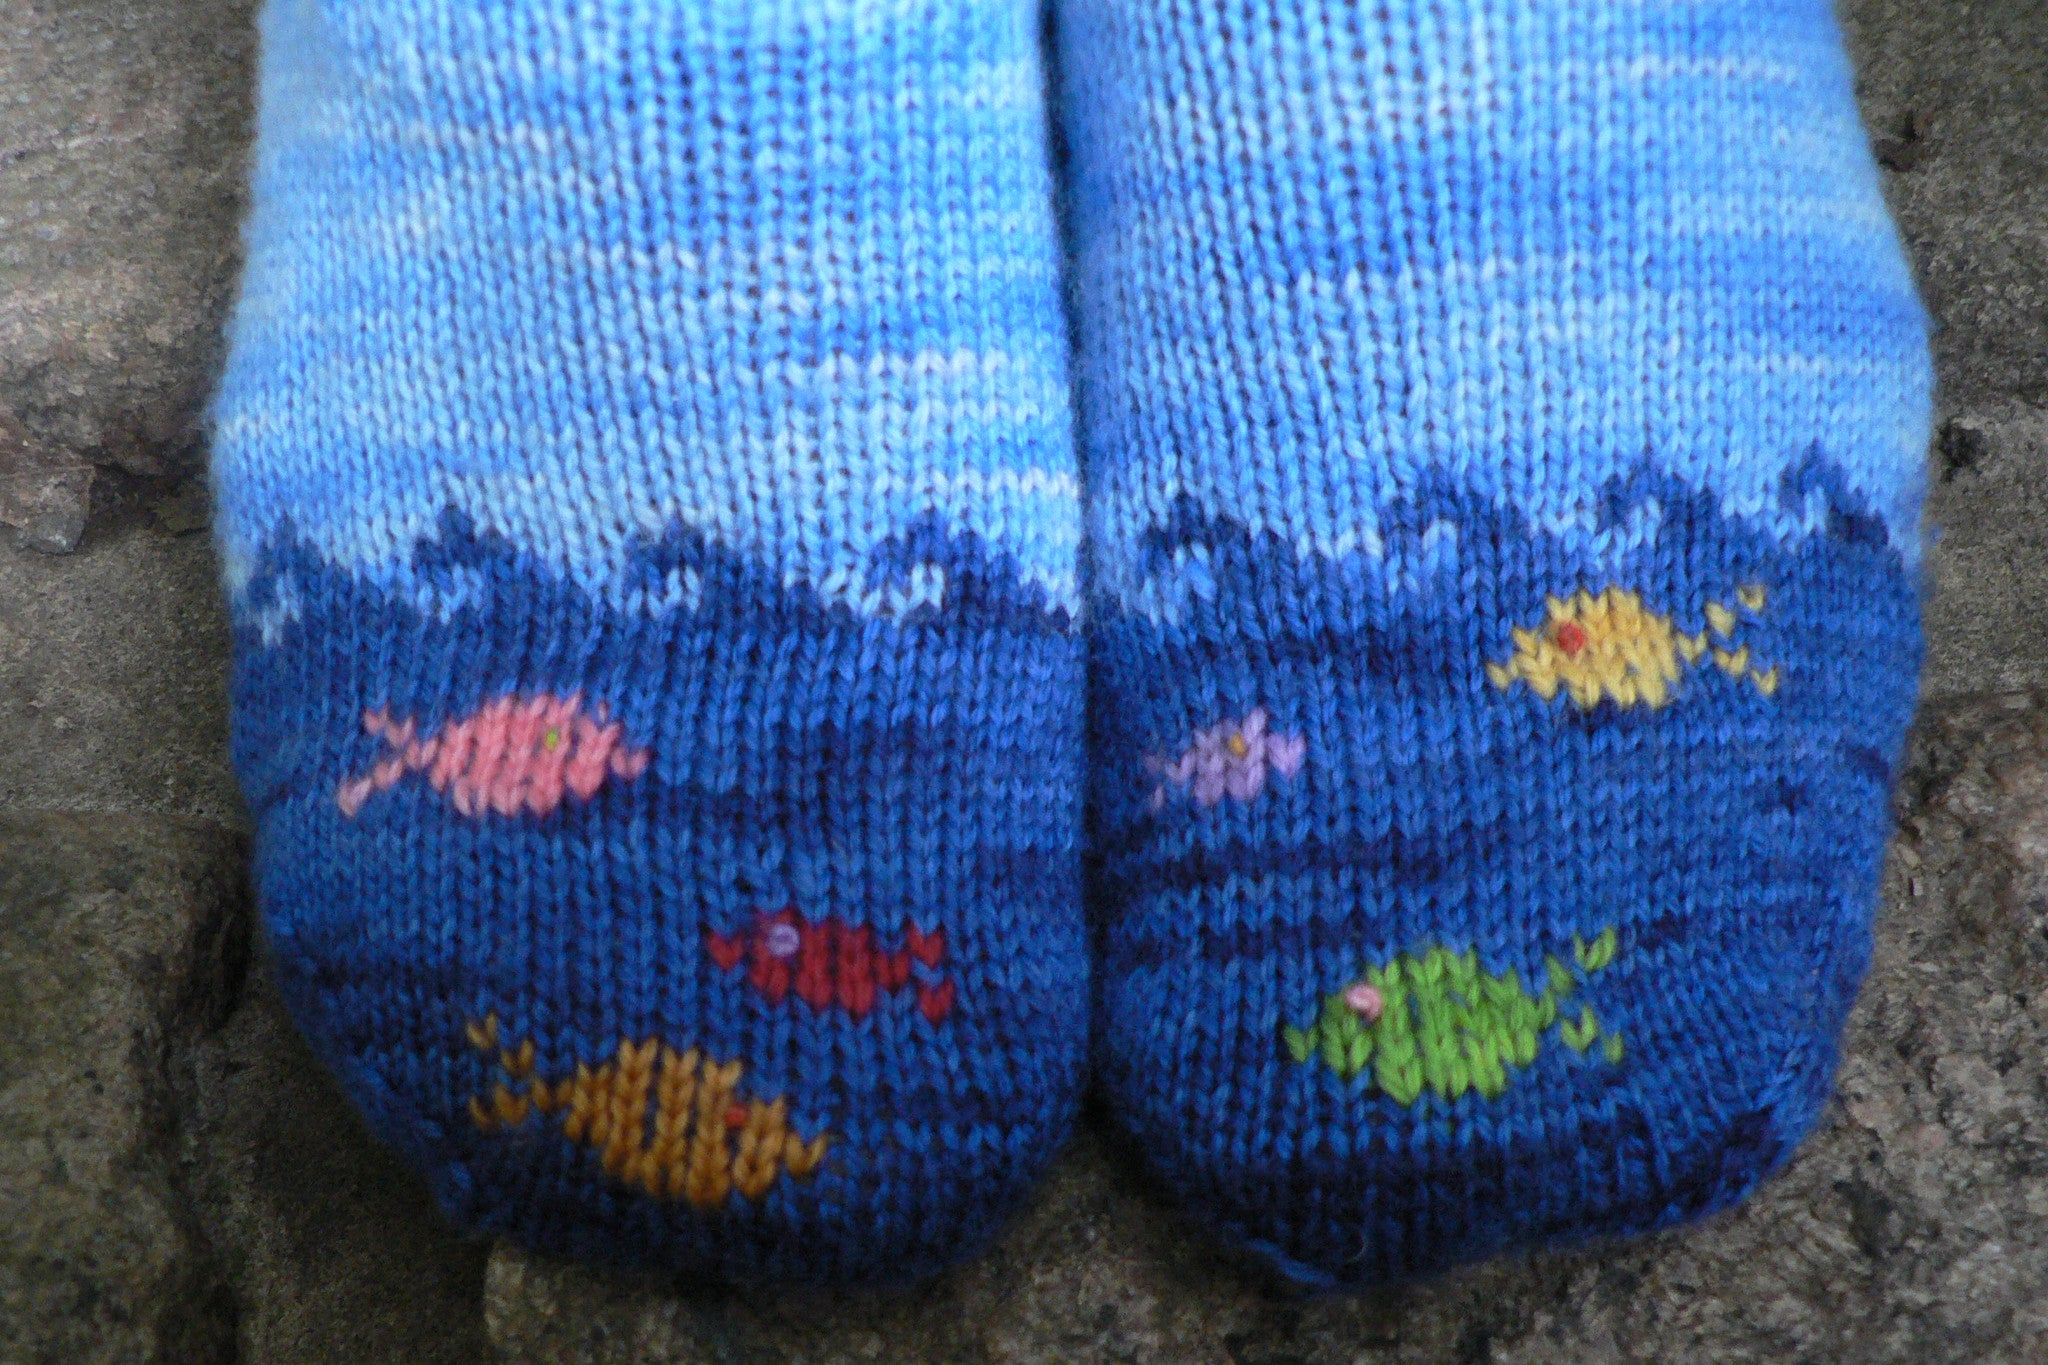 Fish in the Sea socks